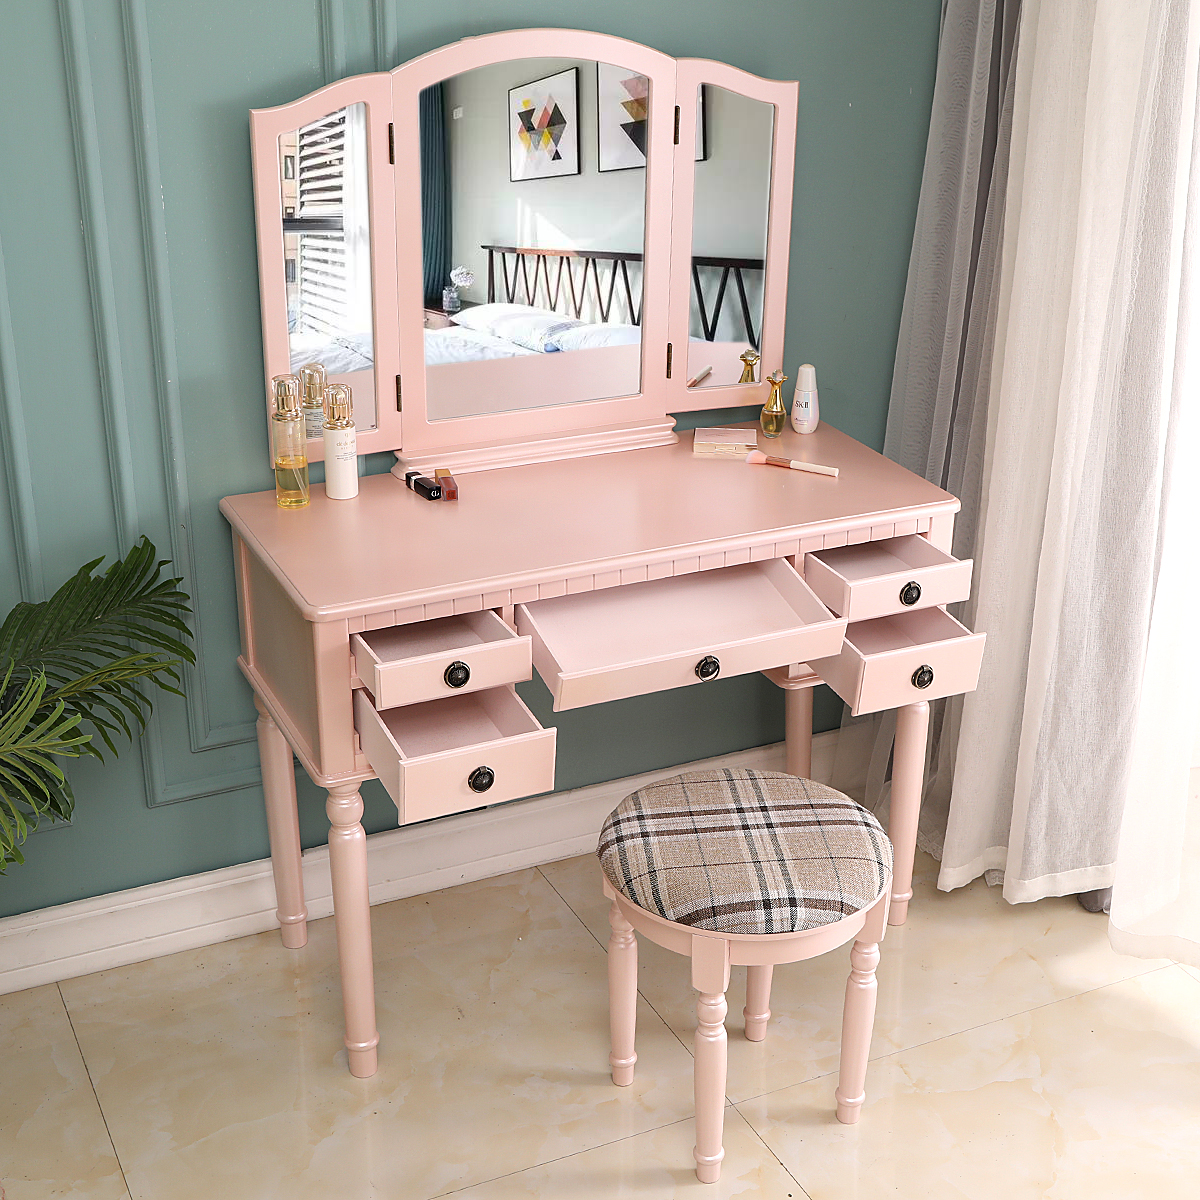 ktaxon large makeup vanity table set dressing table w tri folding mirror cushioned stool 5 drawers wood bedroom furniture pink